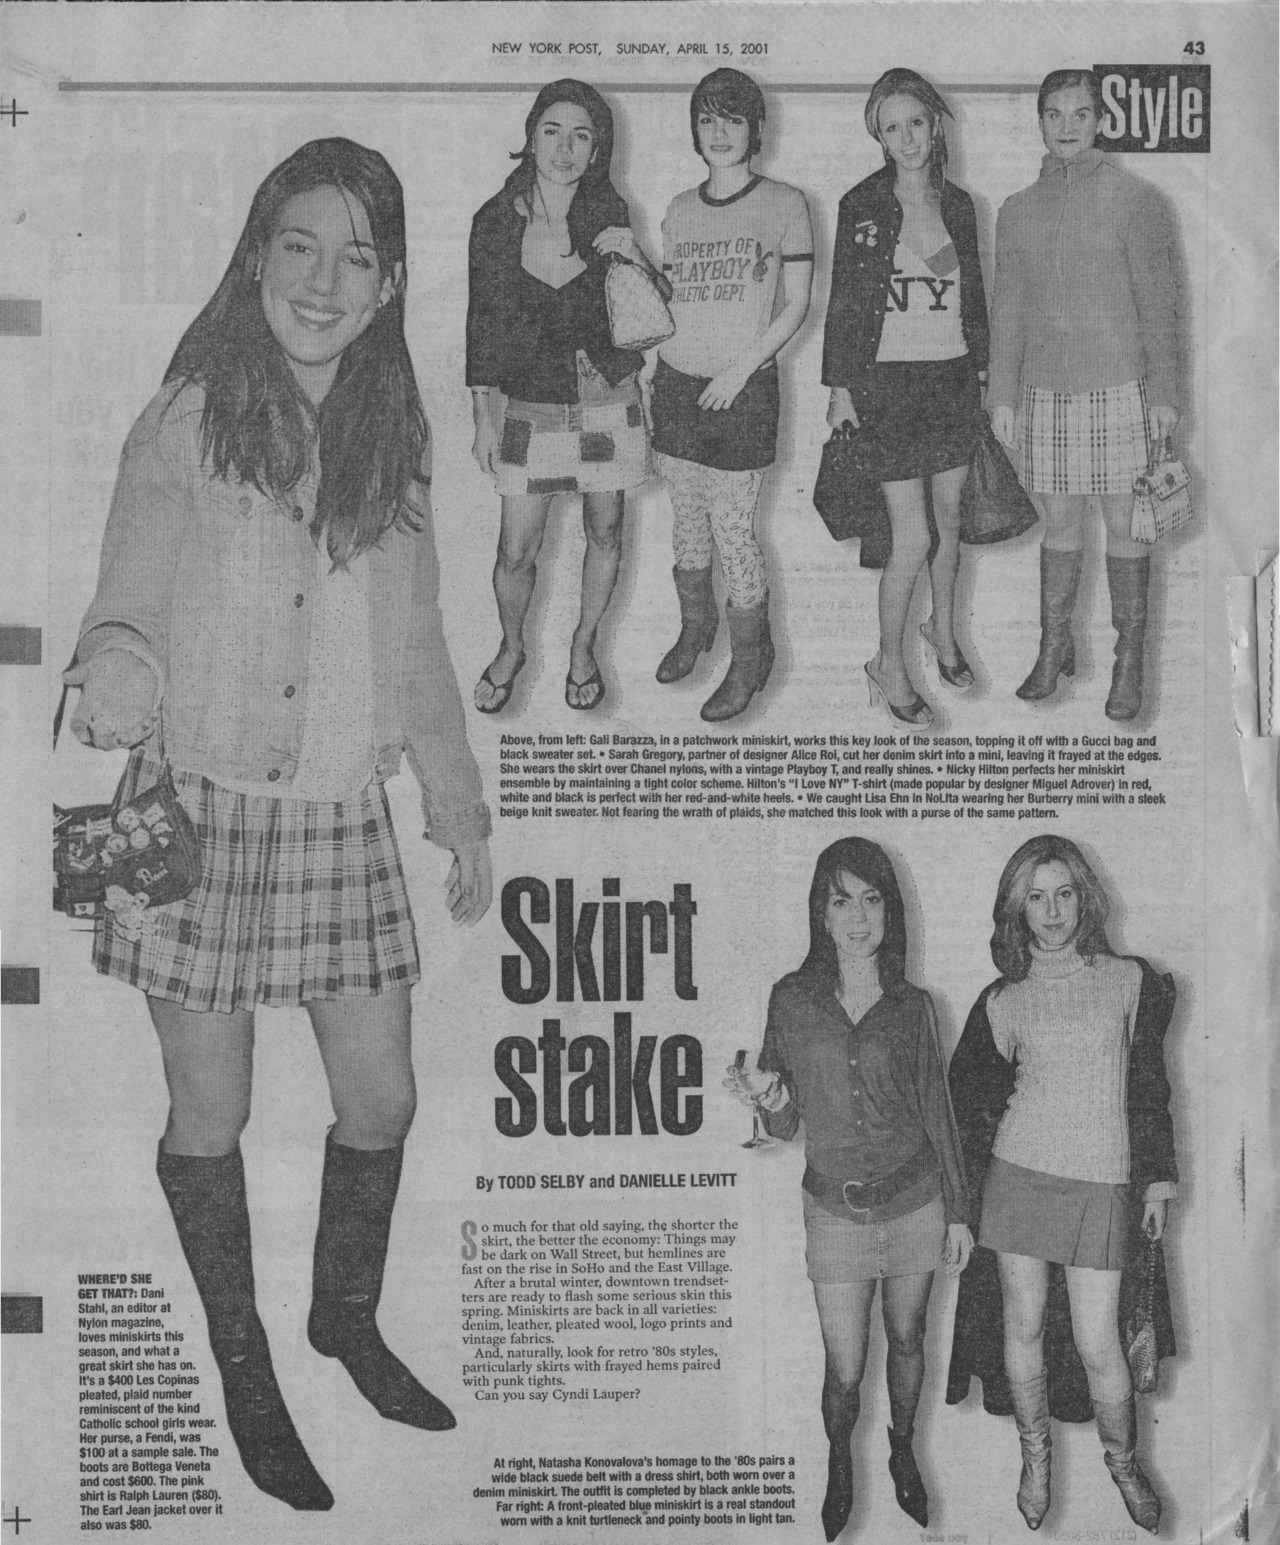 Ohhh~ Look at who I found in the NY POST 2001 style vault! Nicky Hilton and Dani Stahl of NYLON! Lookin' cute in some short mini skirts reminiscent of catholic school uniforms & Clueless. ~duh.